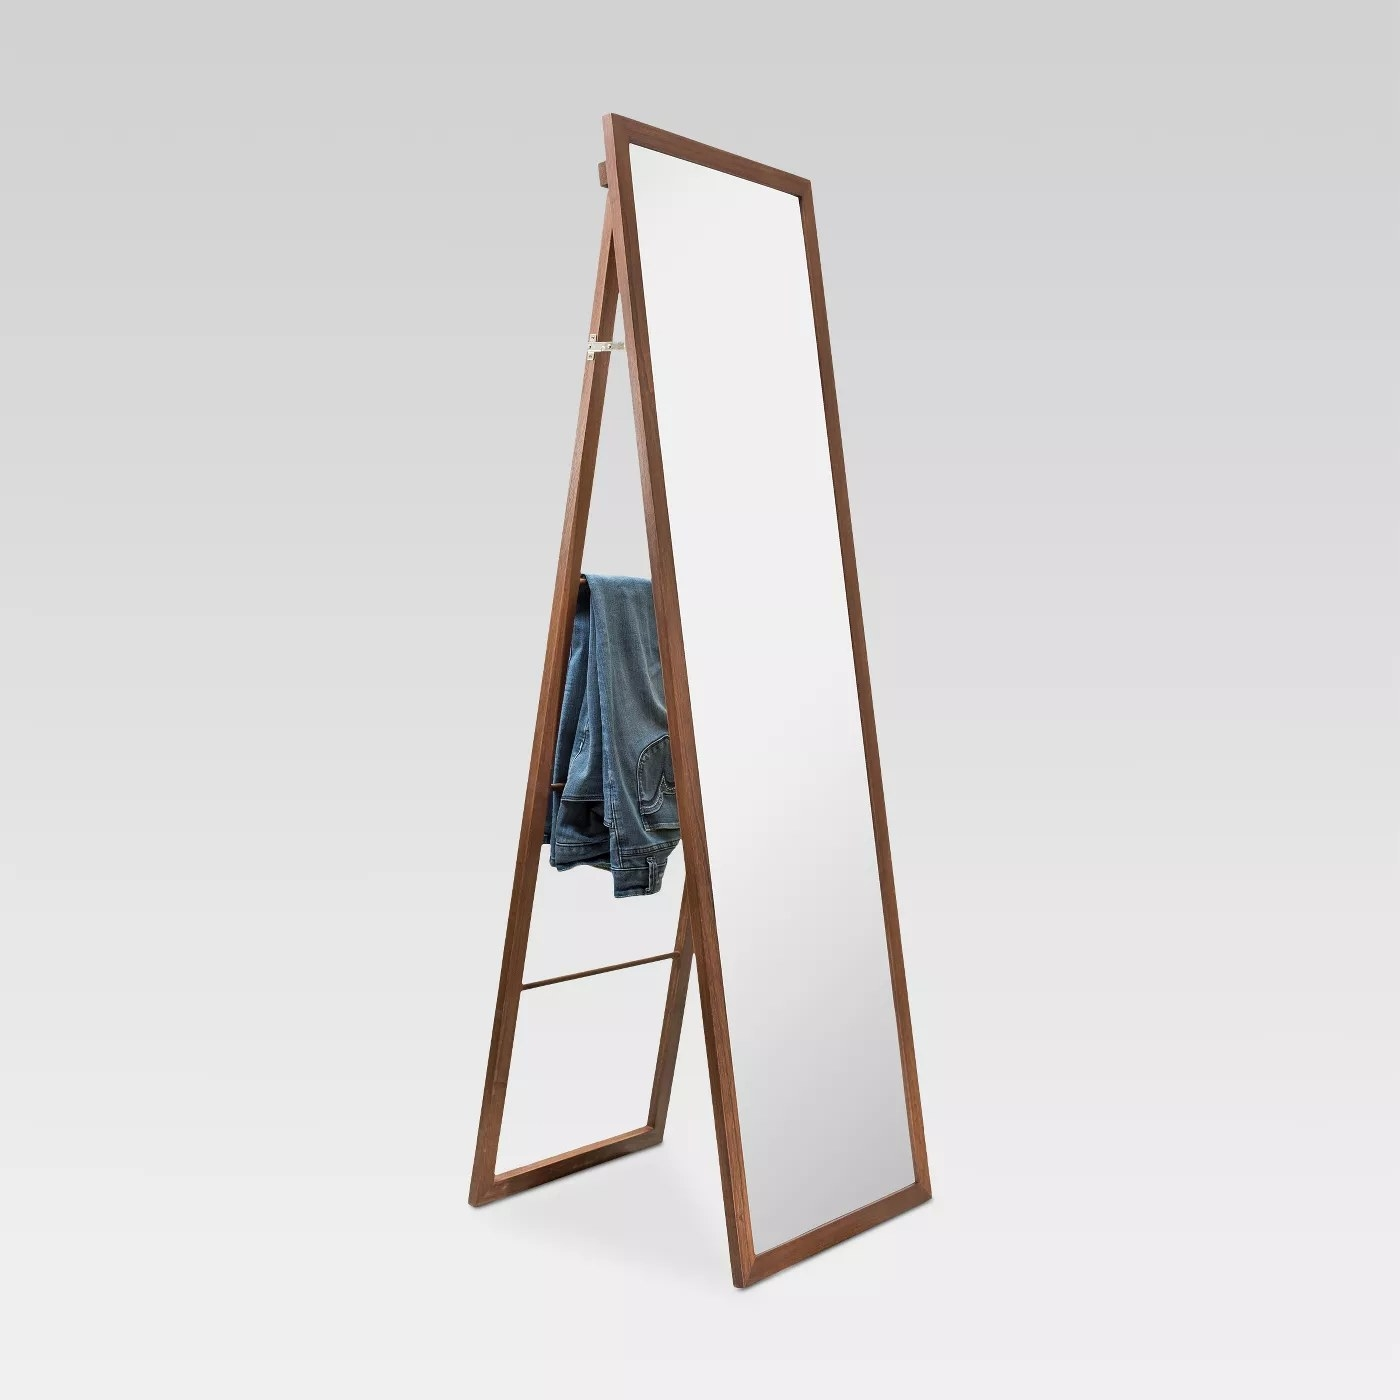 The mirror with a ladder attached to the back that can hold clothes